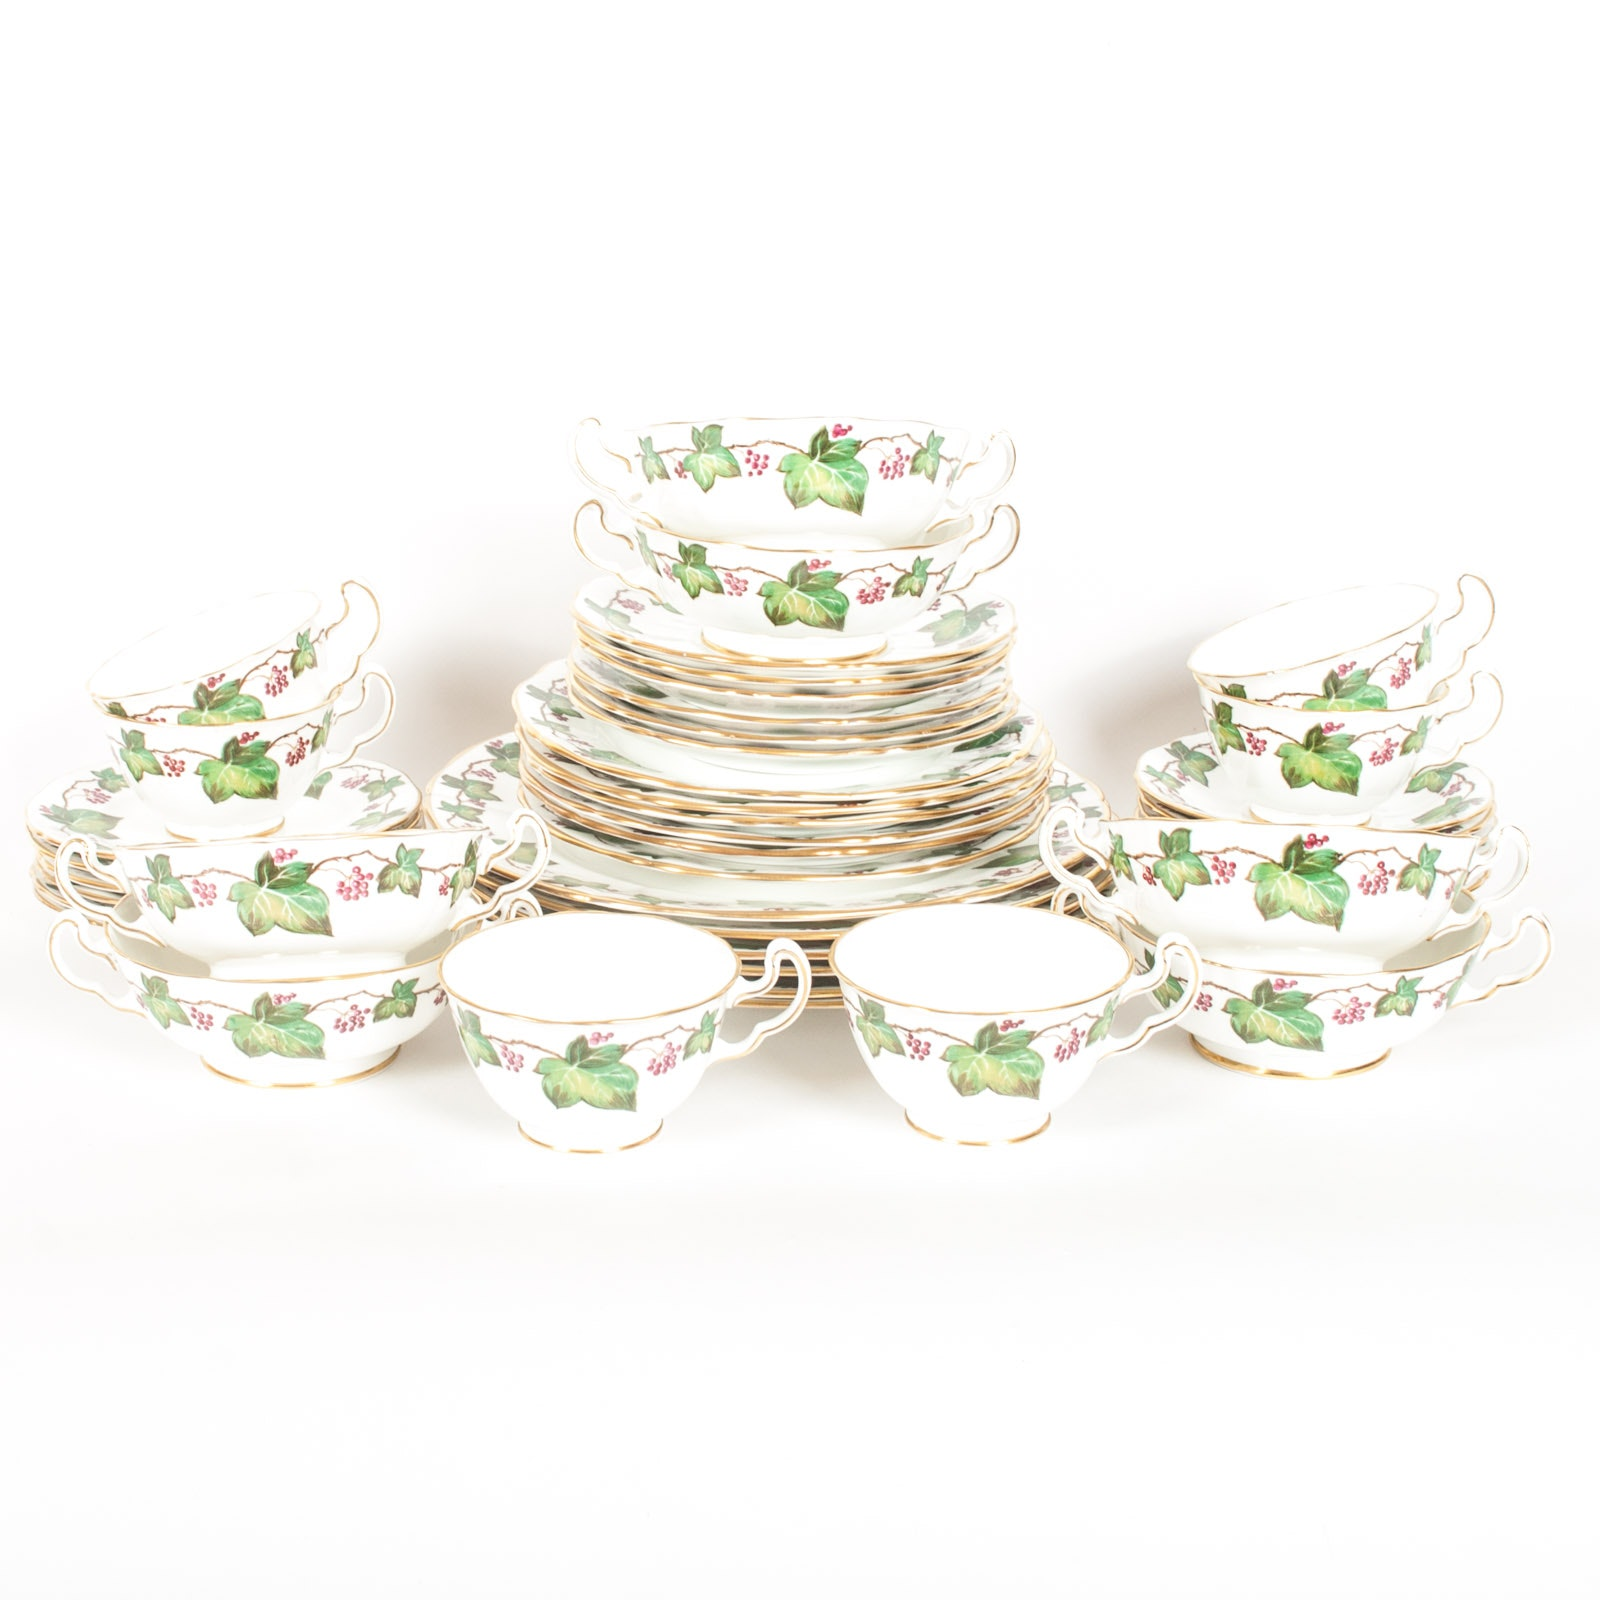 "Adderley ""Ivy"" Fine Bone China Dinnerware"